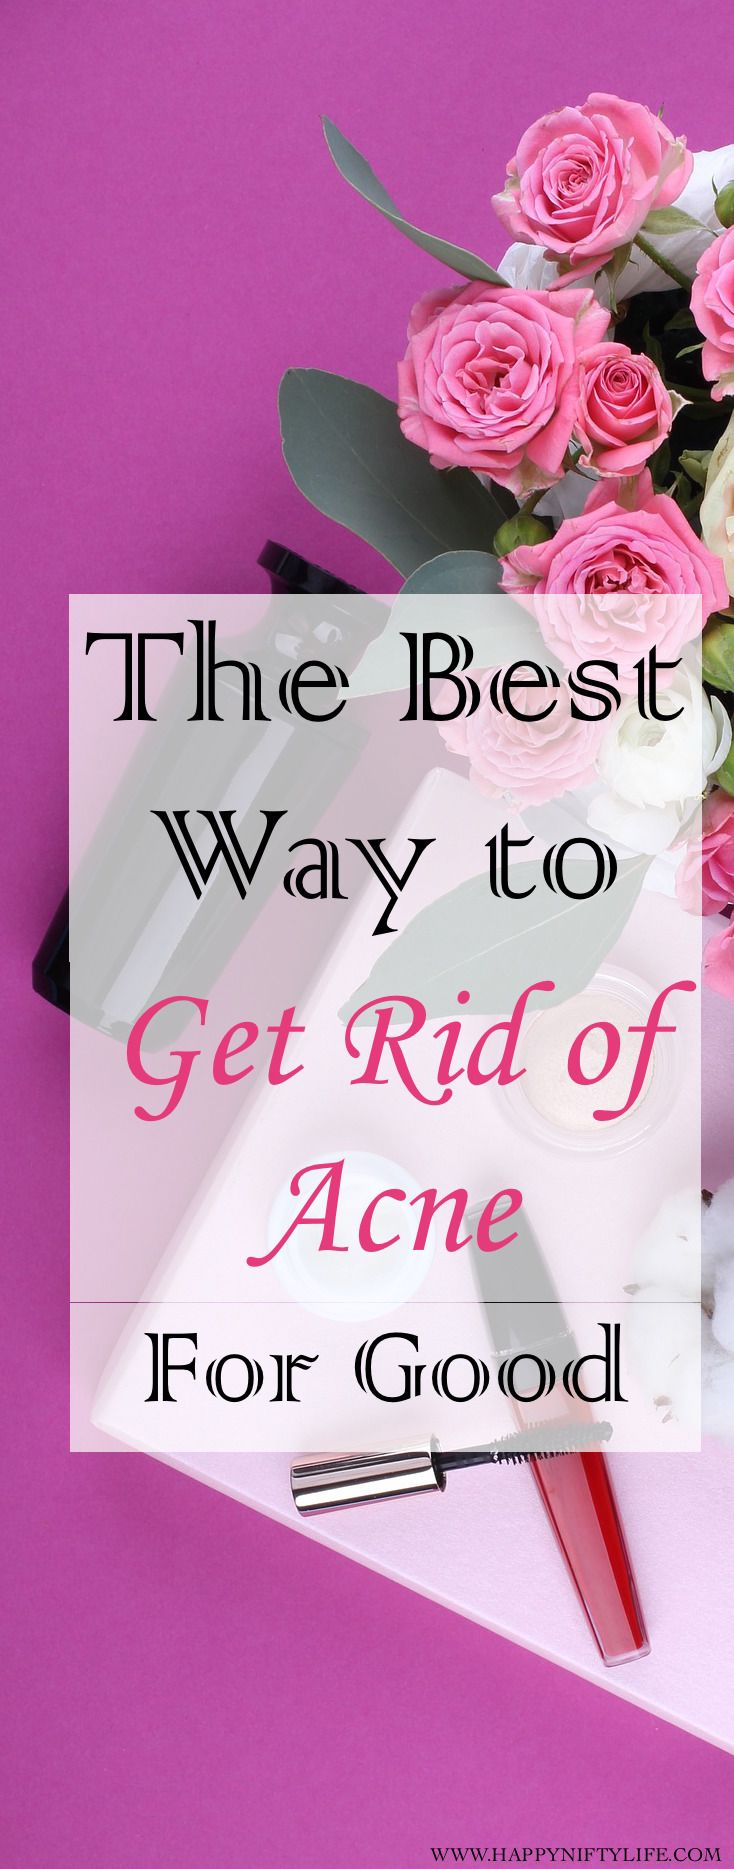 The best way to get rid of acne for good